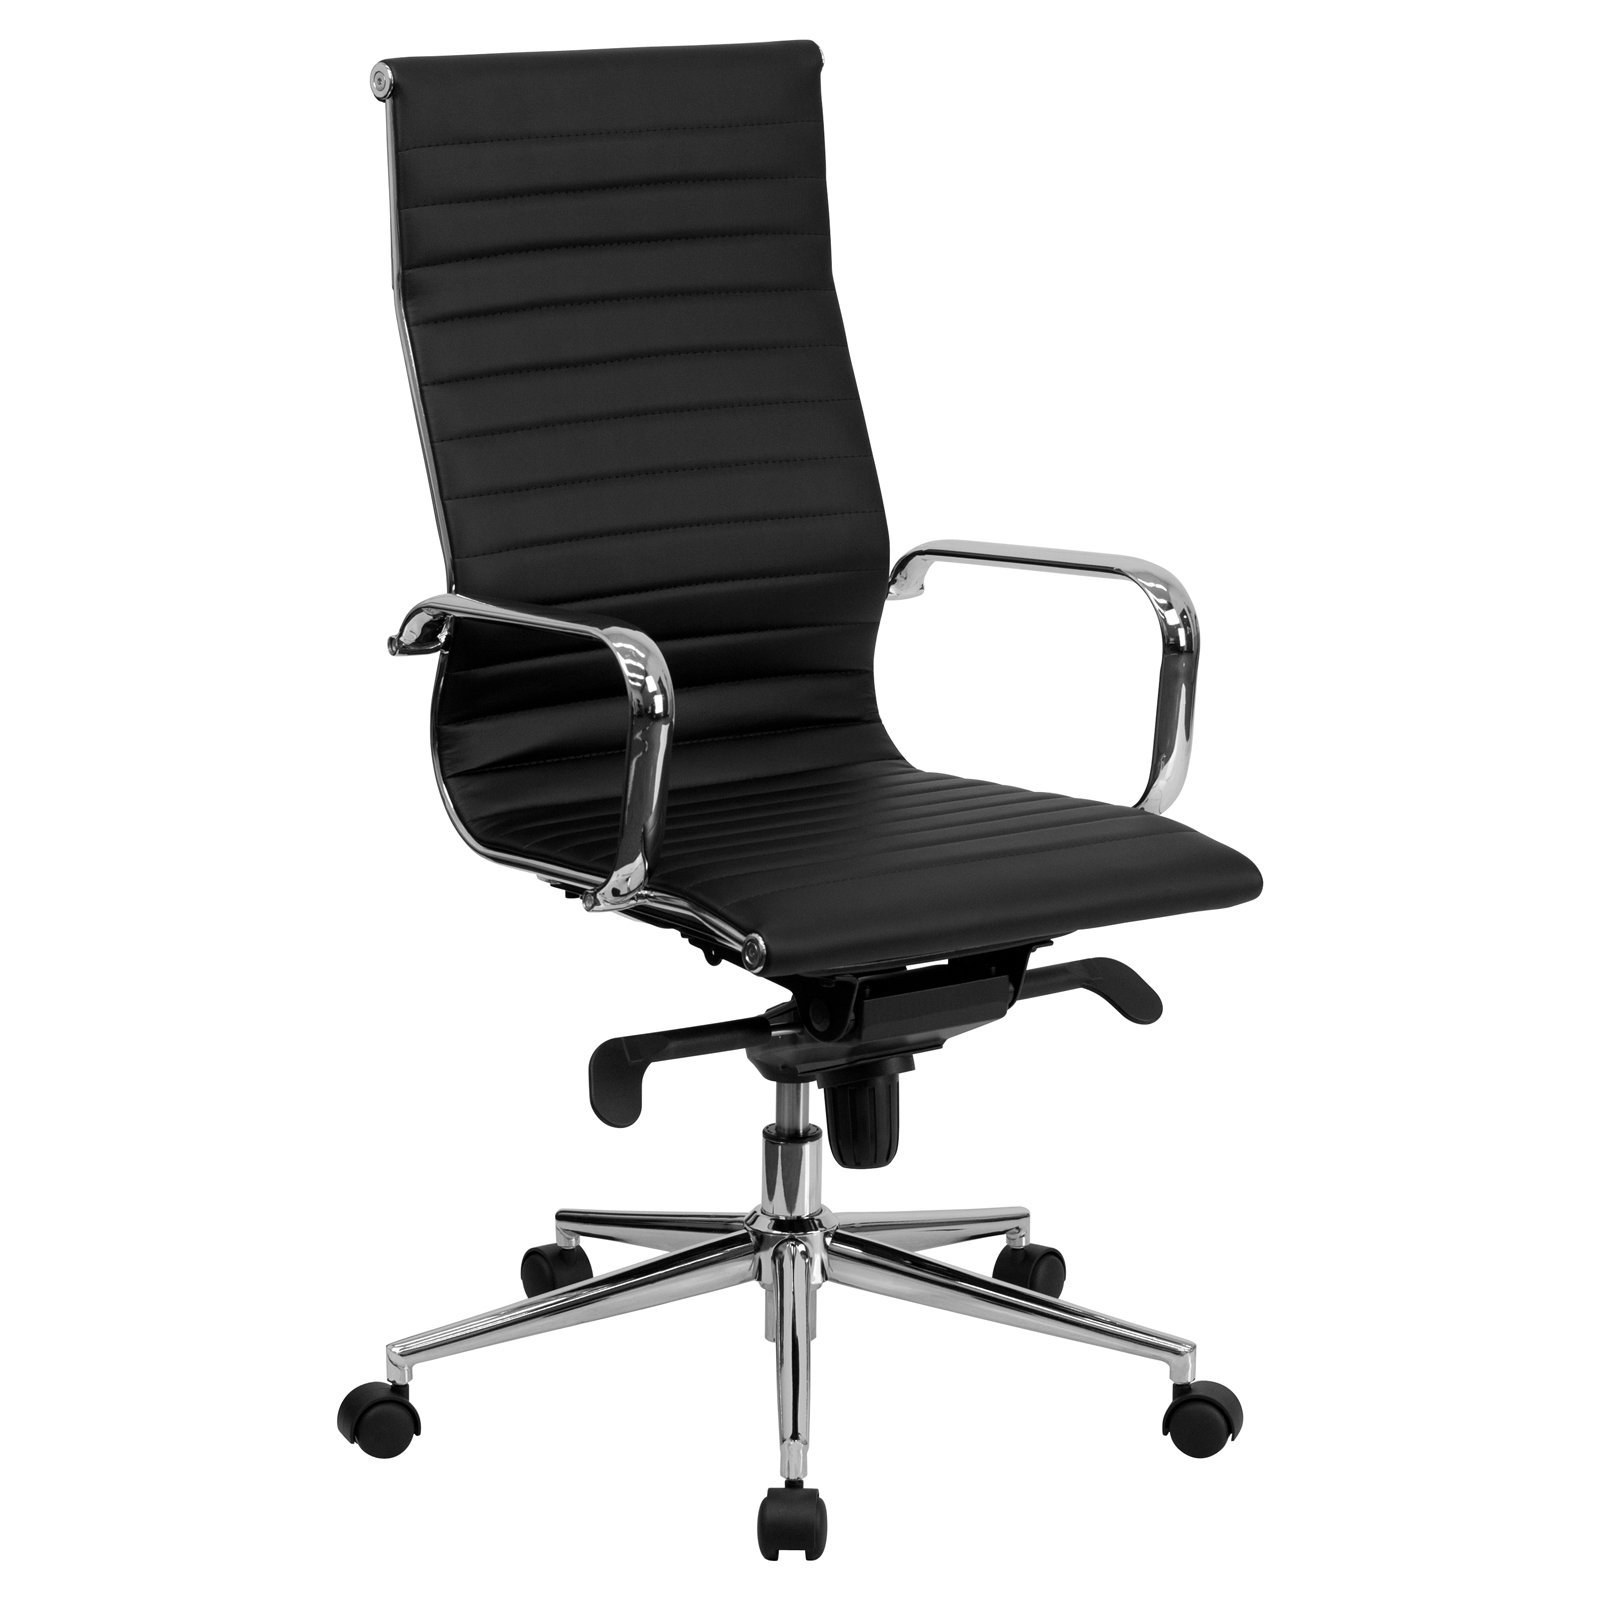 Flash Furniture High Back Ribbed Upholstered Leather Executive Office Chair - Walmart.com  sc 1 st  Walmart & Flash Furniture High Back Ribbed Upholstered Leather Executive ...